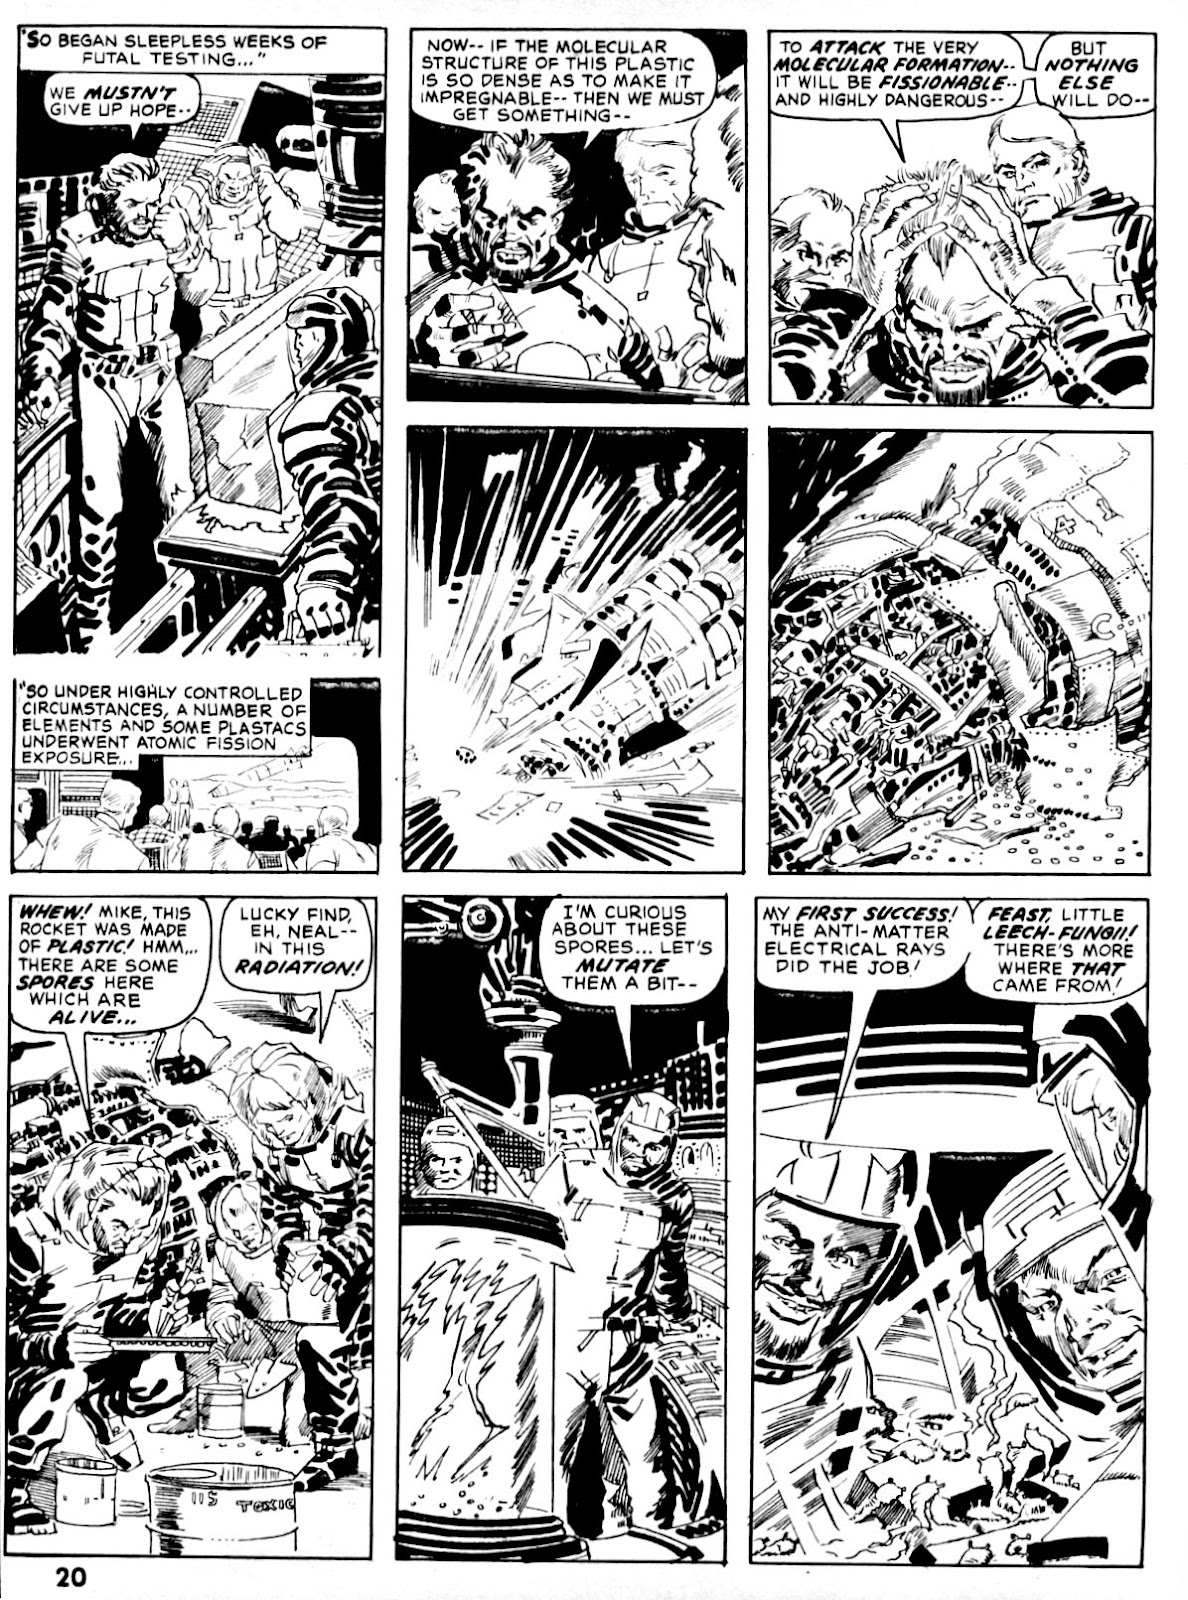 Nightmare (1970) issue 14 - Page 19